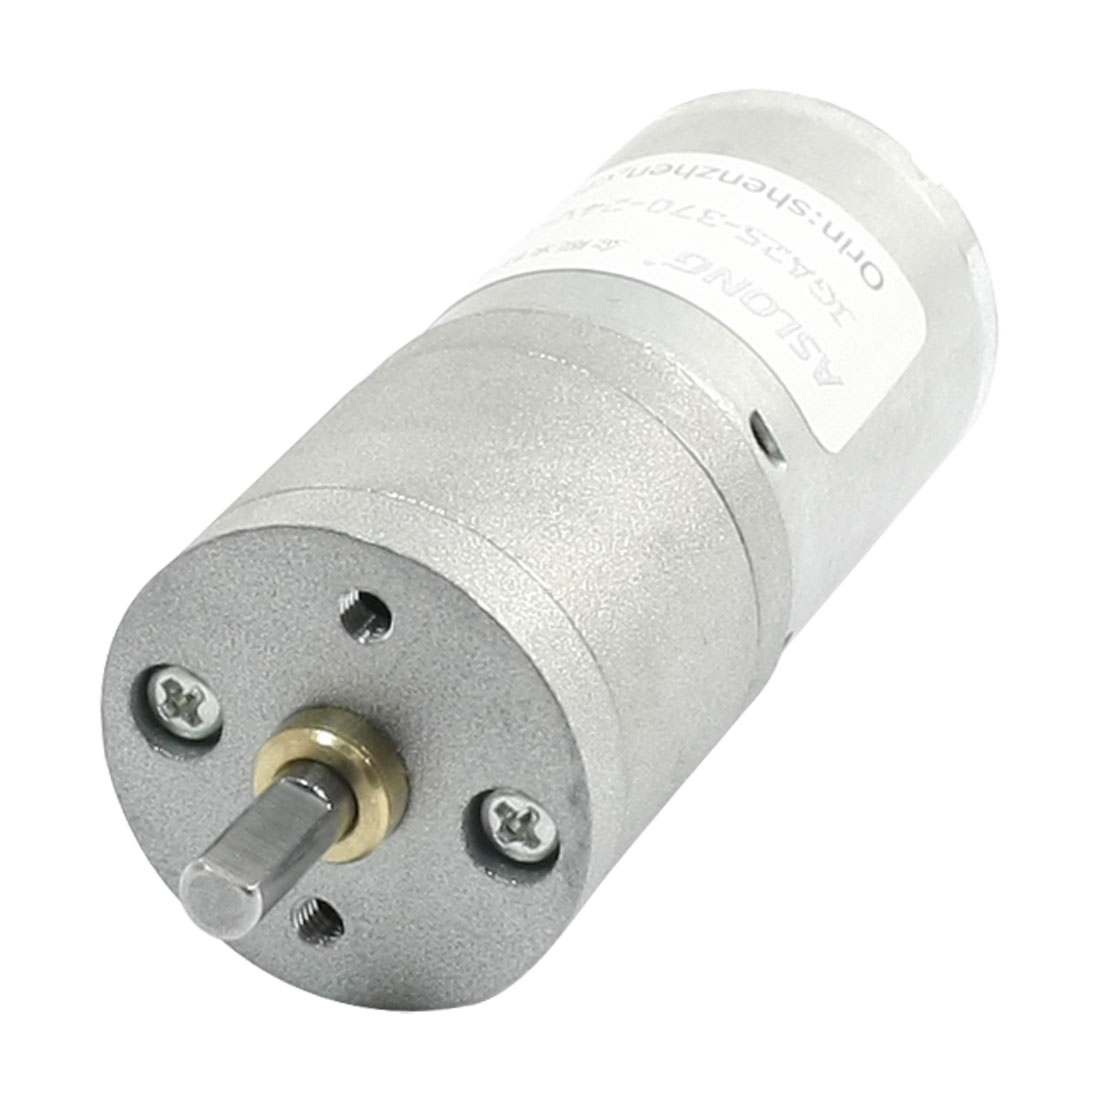 GA25-370 DC 24V 17RPM 4mm Shaft Cylinder Shaped Speed Reducing Gear Motor